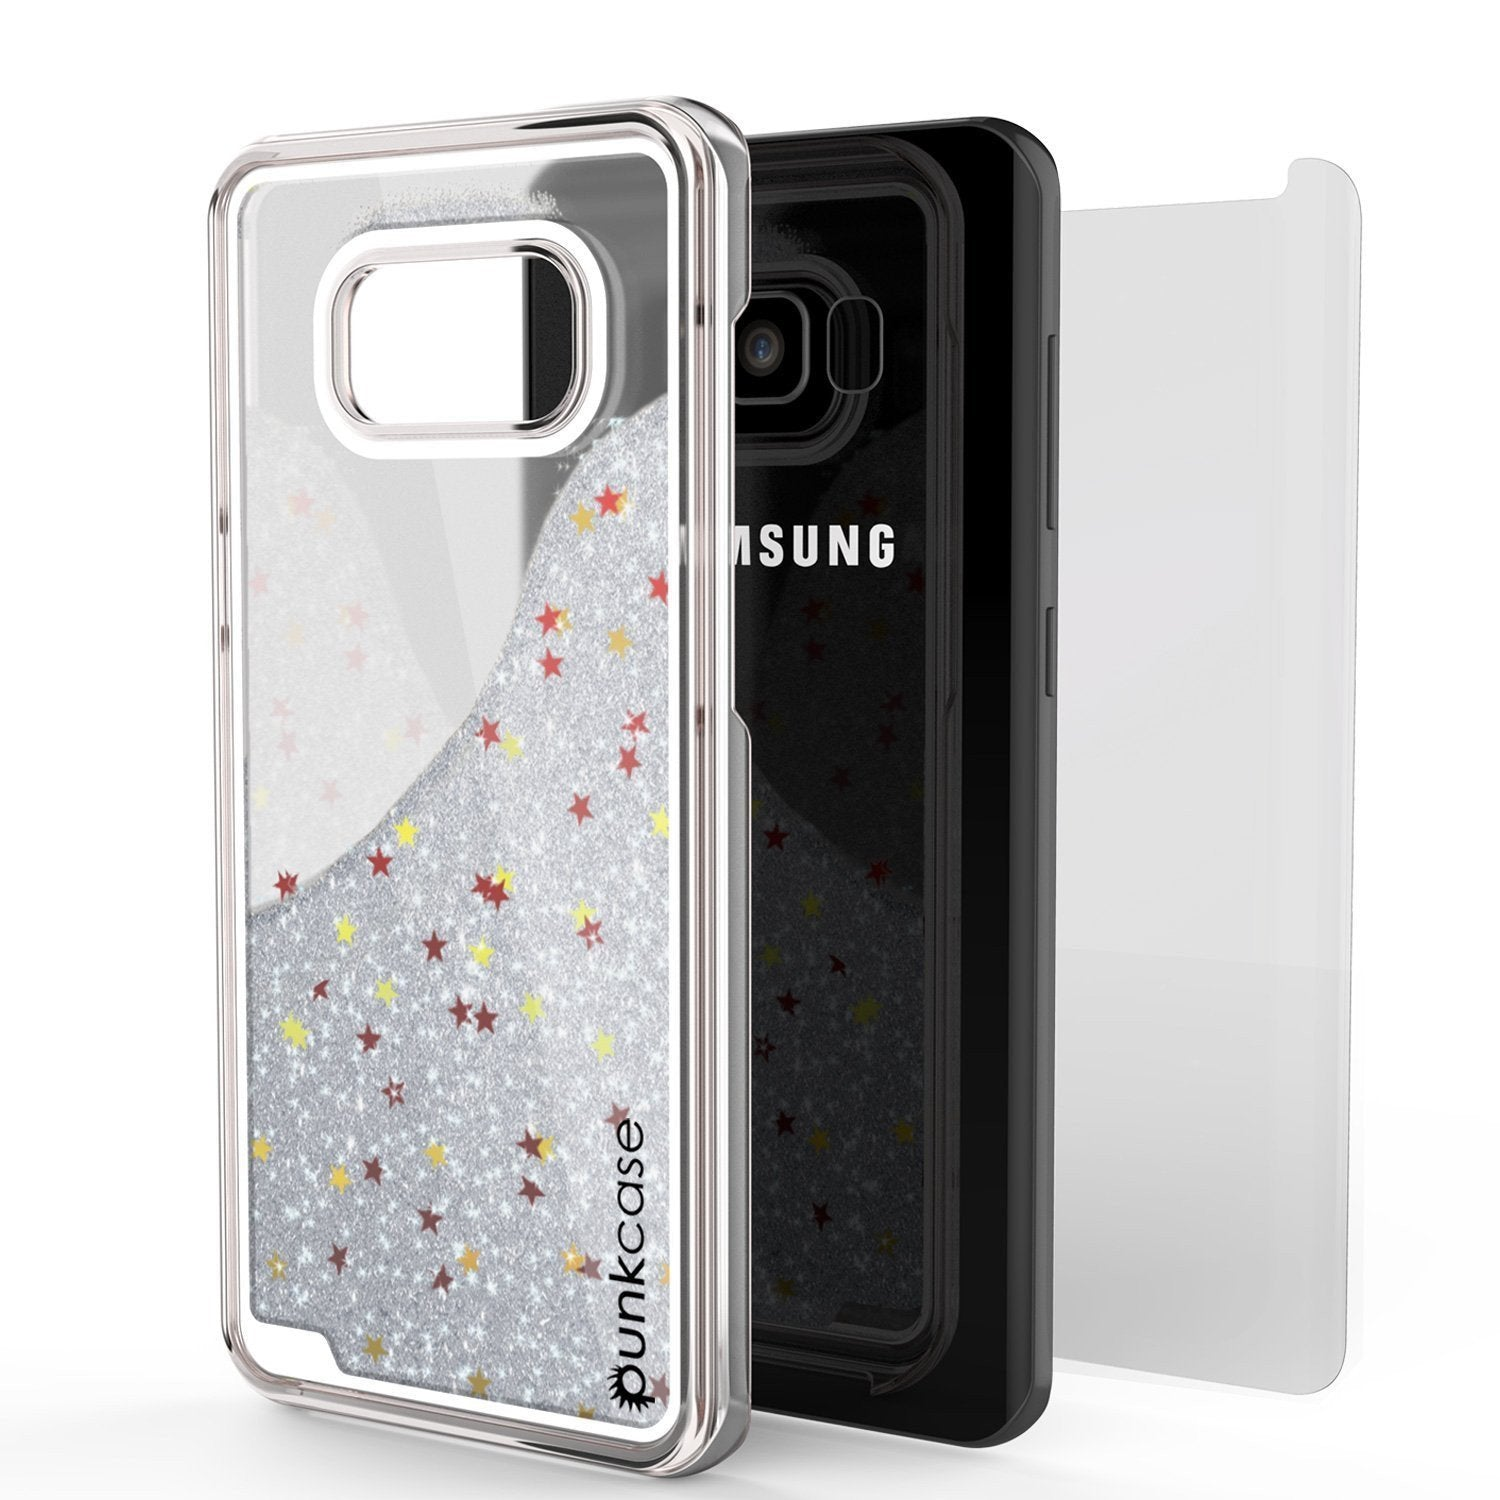 S8 Plus Case, Punkcase [Liquid Series] Protective Dual Layer Floating Glitter Cover with lots of Bling & Sparkle + PunkShield Screen Protector for Samsungs Galaxy S8+ [Silver] - PunkCase NZ